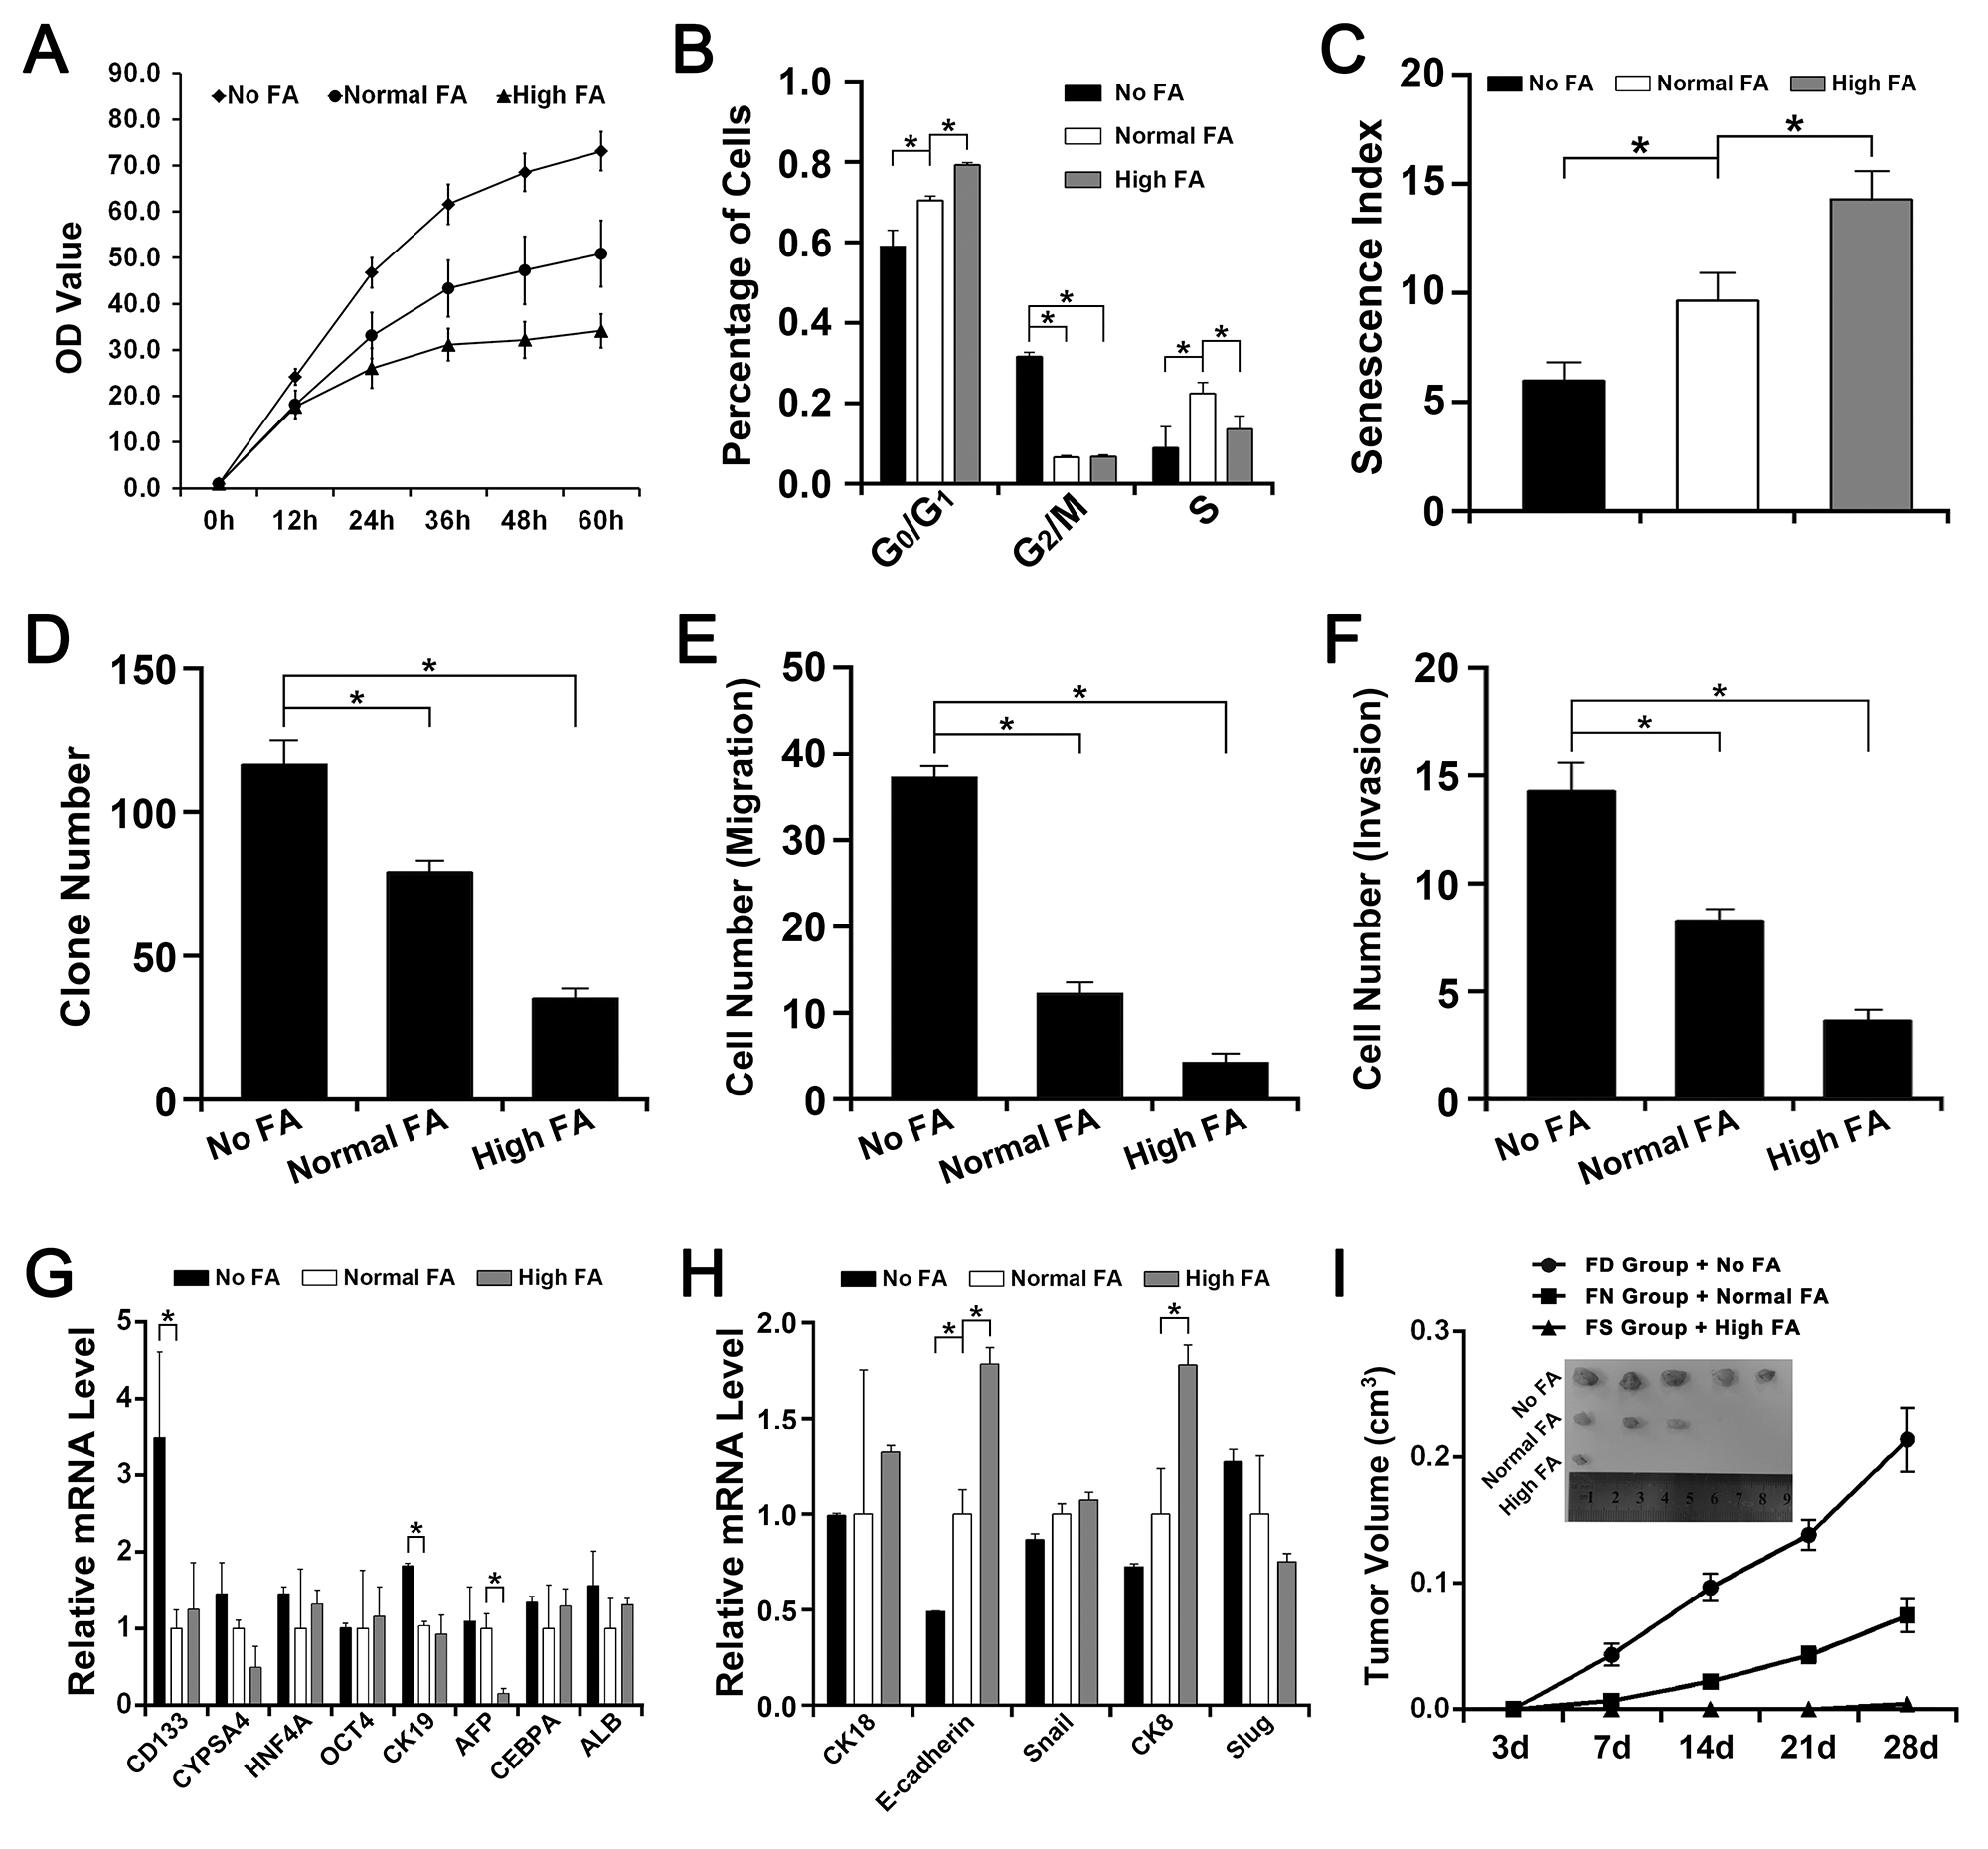 The effect of FA deficiency or supplementation on QSG-7701 cells in vitro and in vivo.